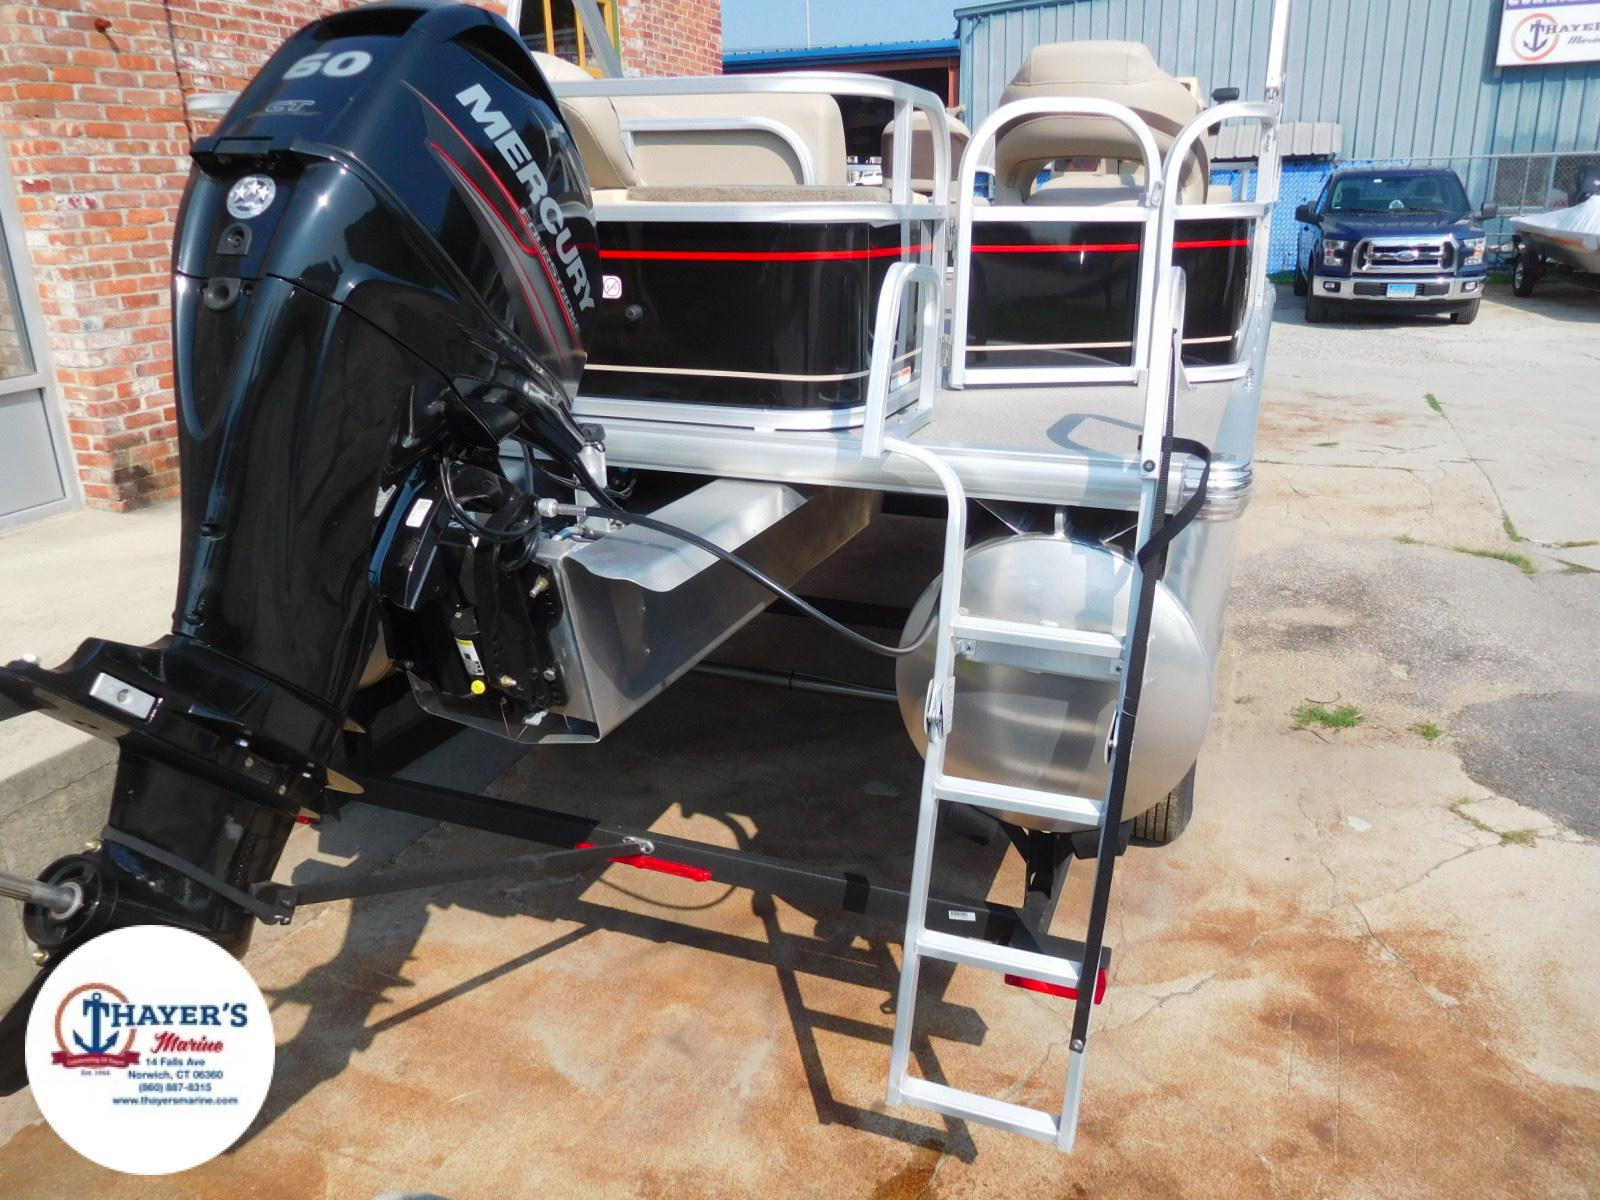 2018 Sun Tracker boat for sale, model of the boat is Bass Buggy 18 DLX & Image # 17 of 35